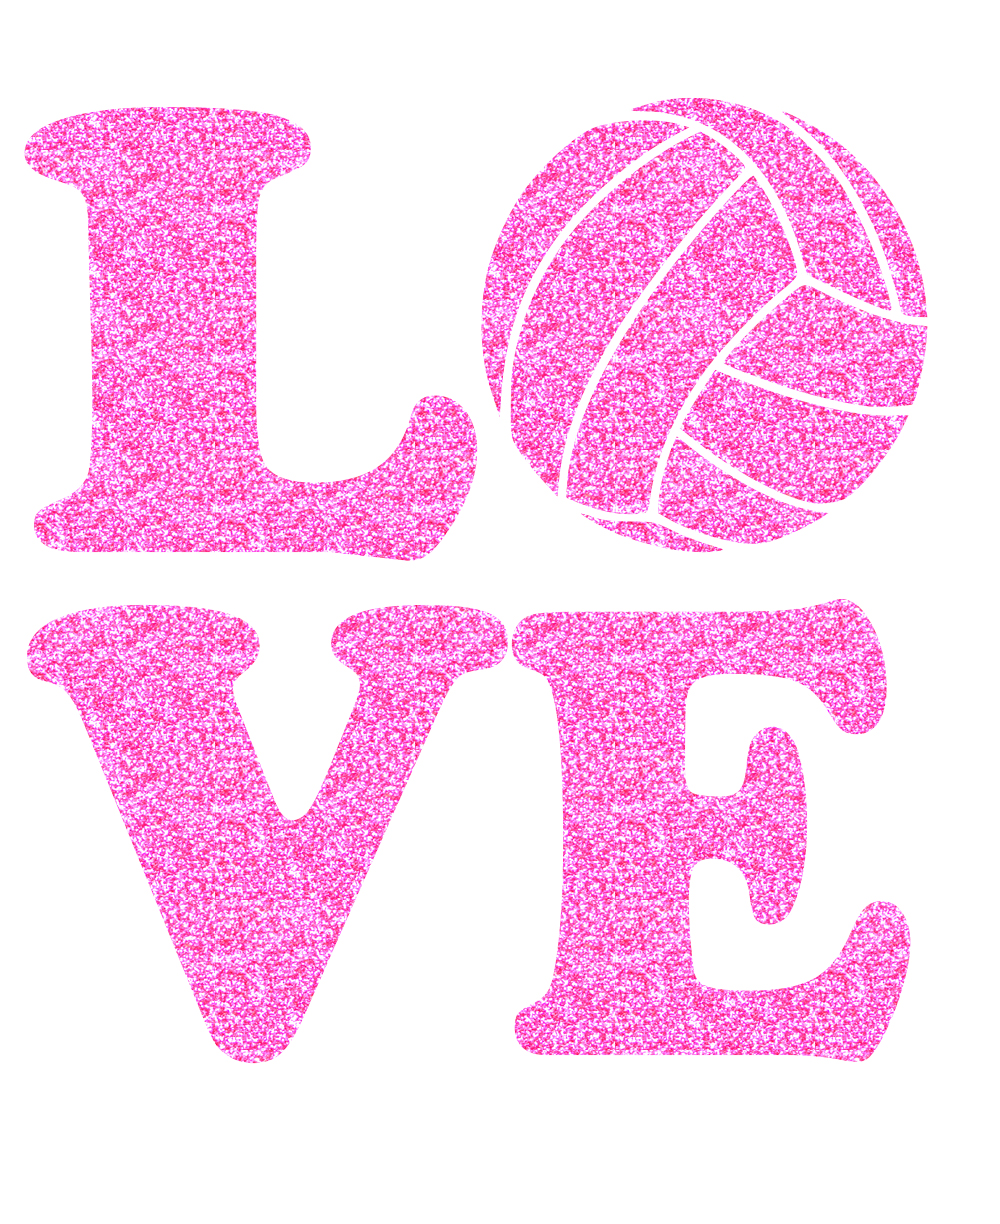 Volleyball Quotes Wallpapers Love Volleyball Transfer Volleyball